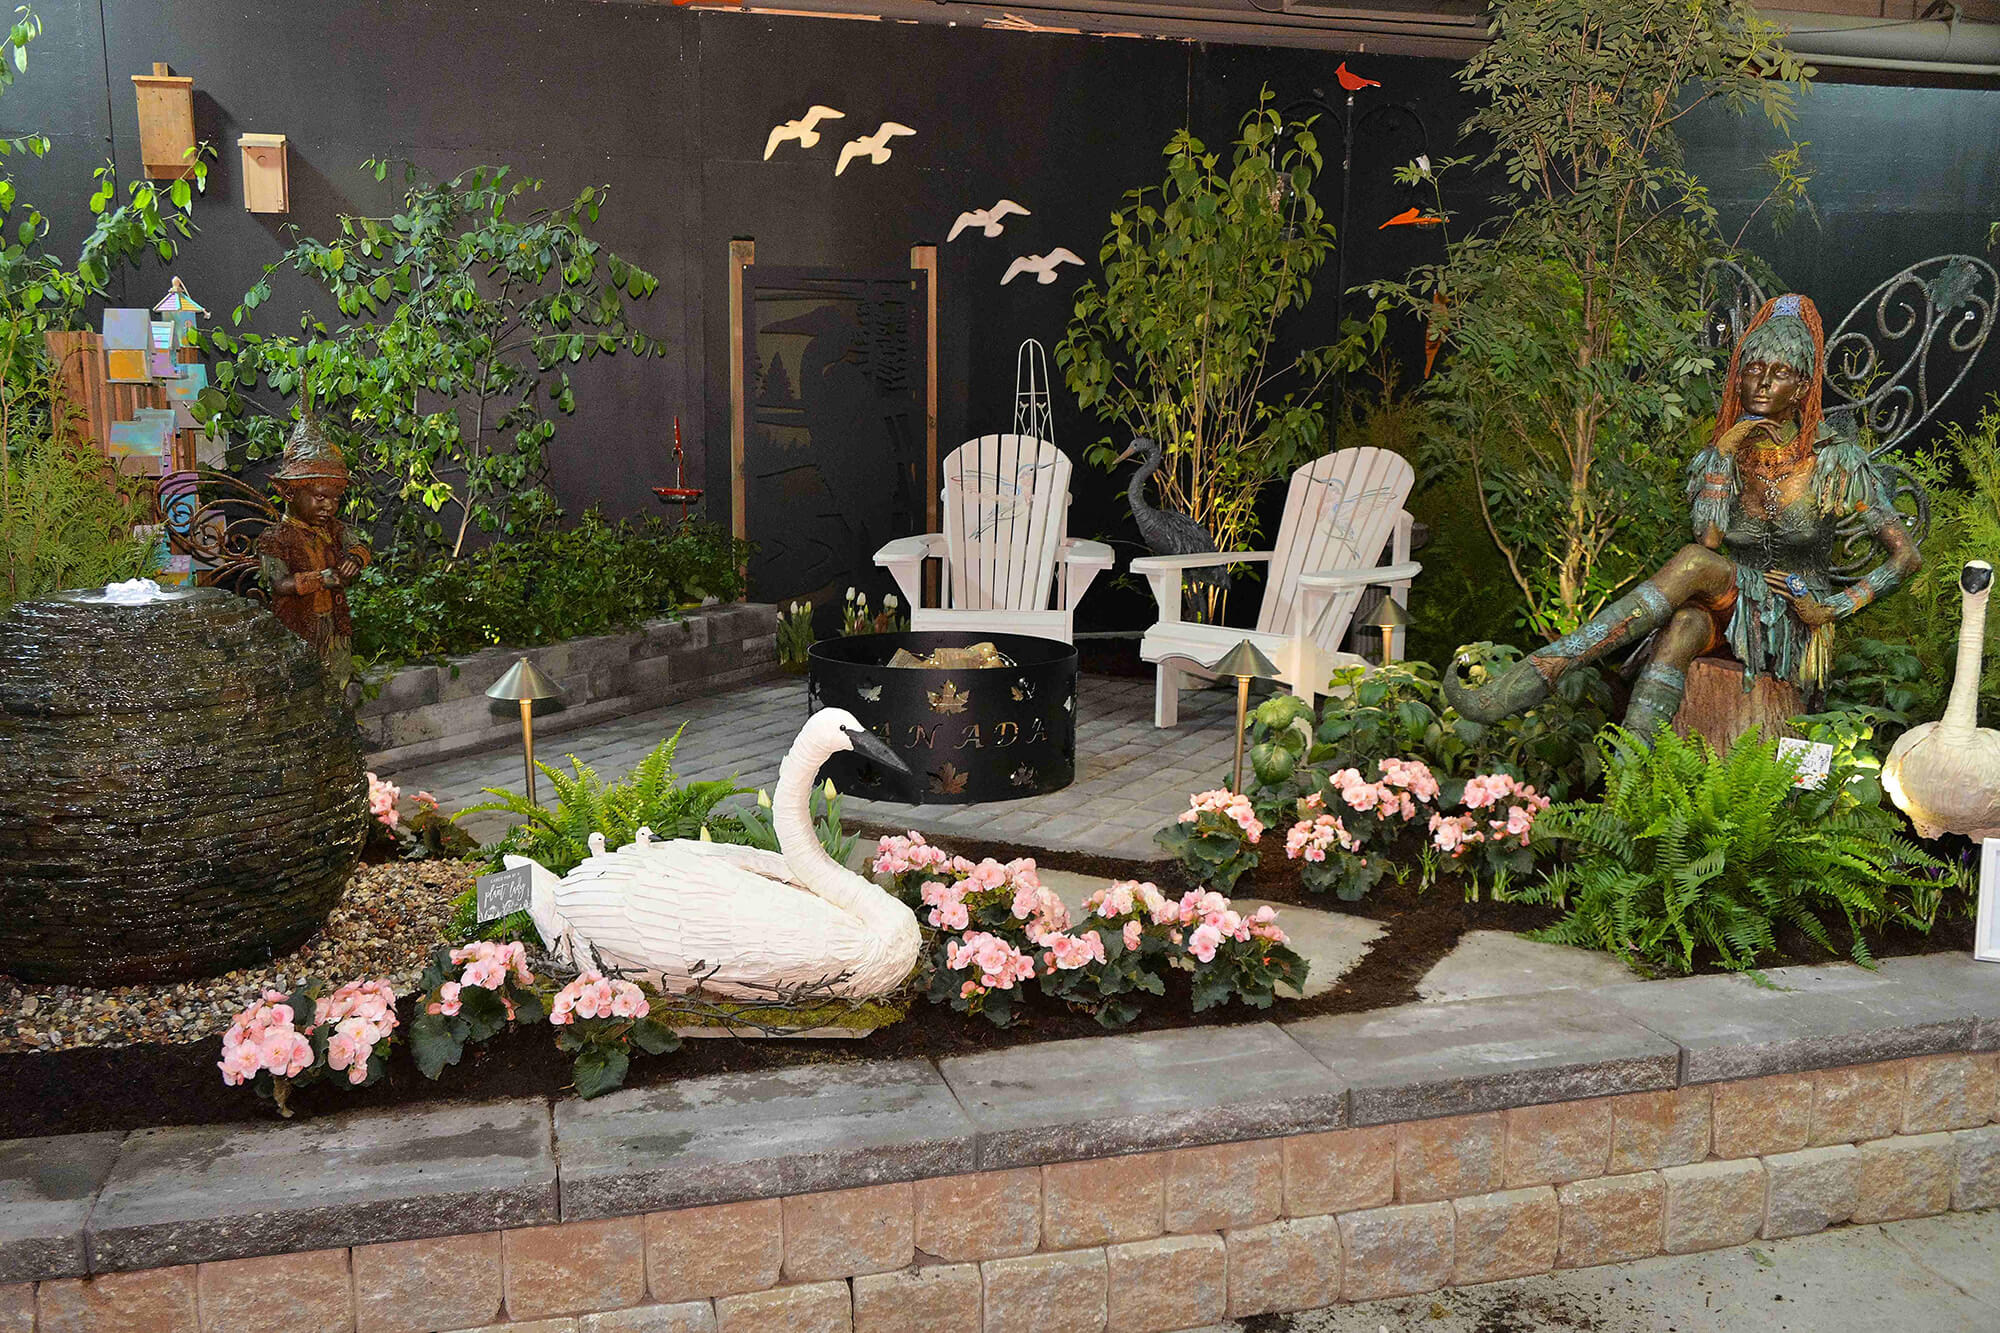 pation garden with muskoka chairs